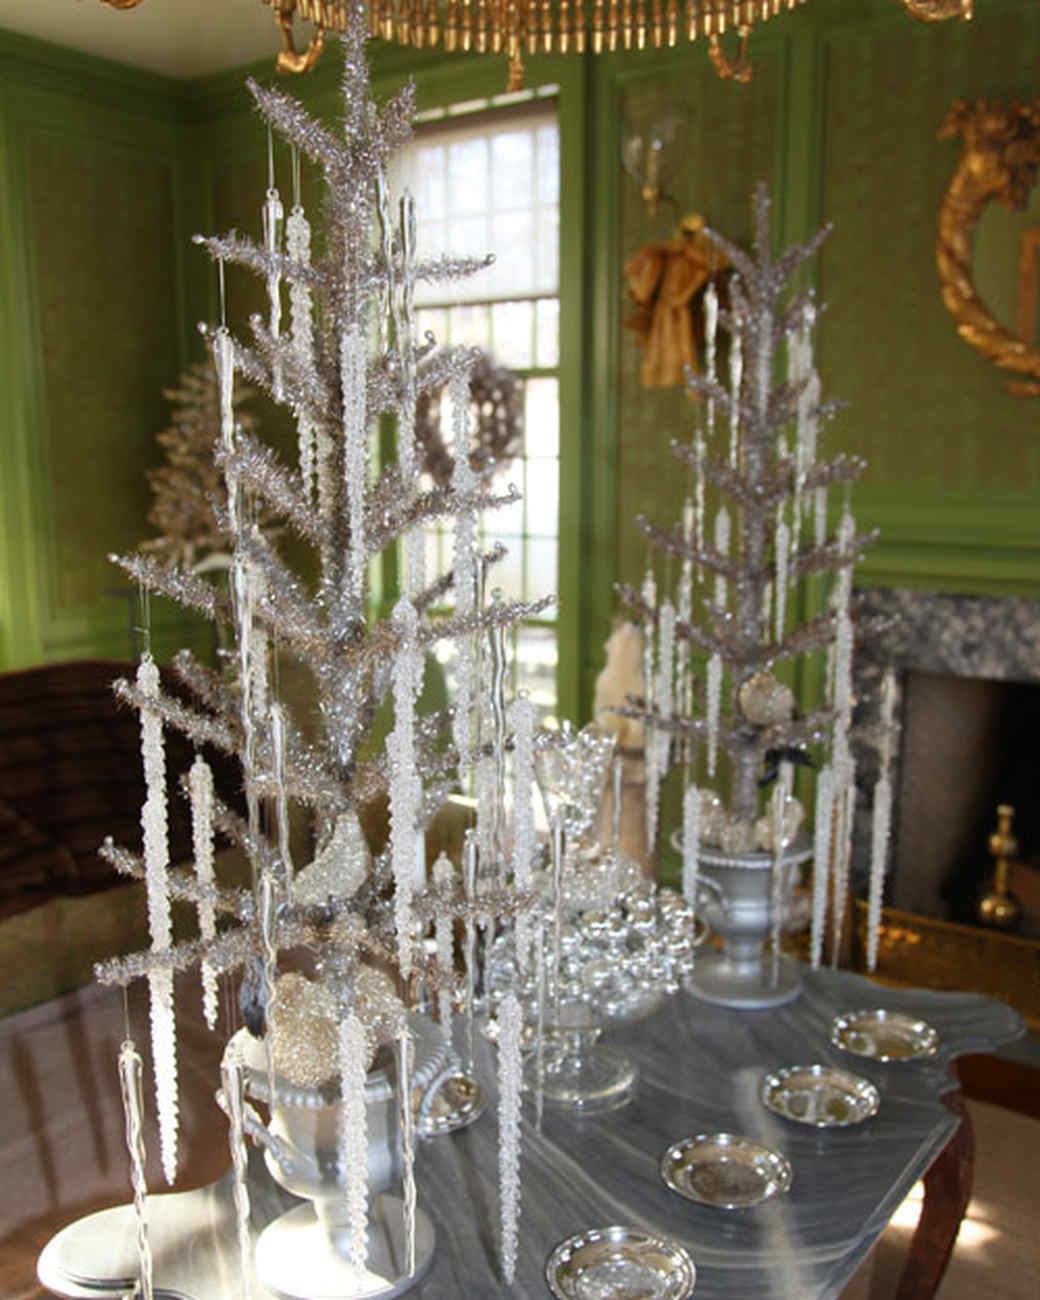 Decoration Design: Martha's Holiday Decorating Ideas